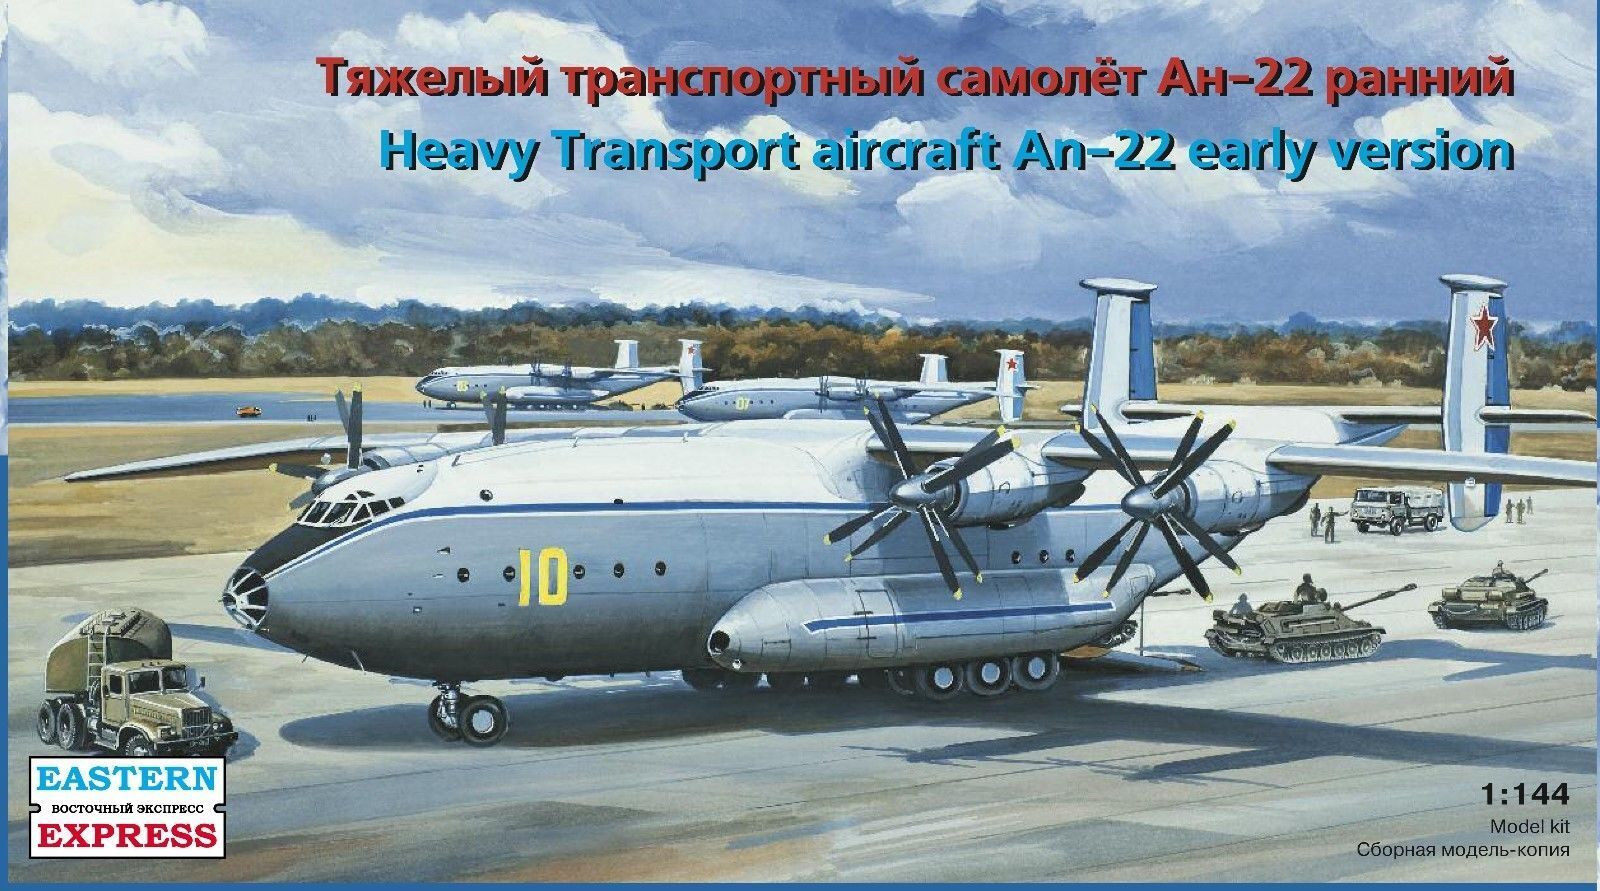 EASTERN EXPRESS 14479 HEAVY TRANSPORT AIRCRAFT AN-22 SCALE MODEL KIT 1 144 NEW